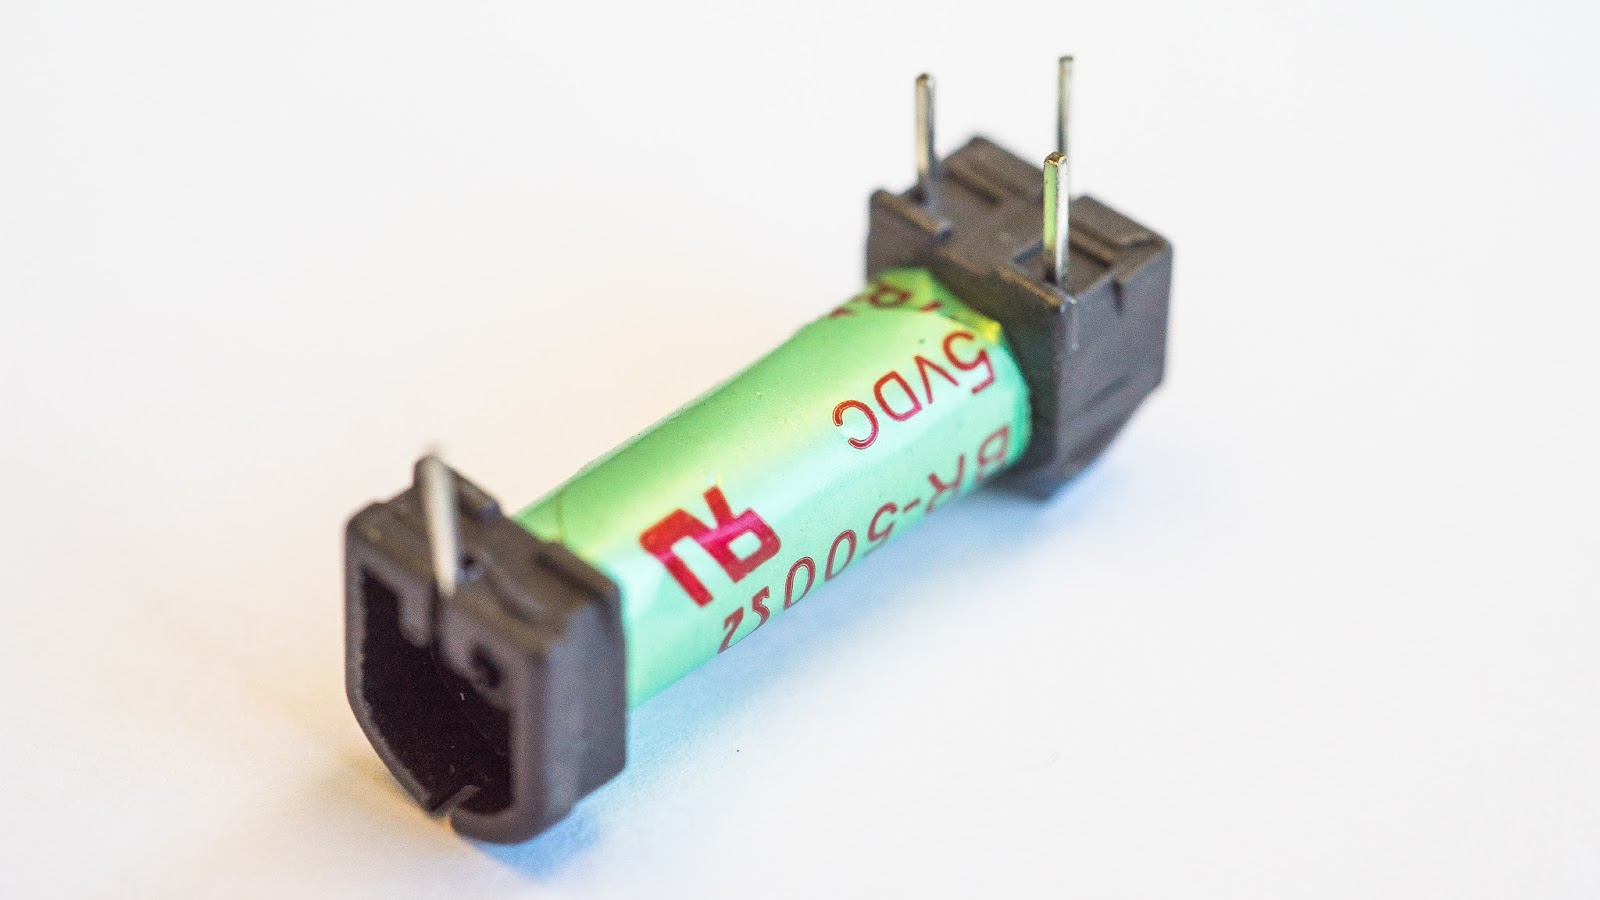 Little Scale Circuit Bending Basics Using A Relay To Simulate Tutorial Digital Pin On The Teensy Is Used Control Coil Thus Making Or Breaking